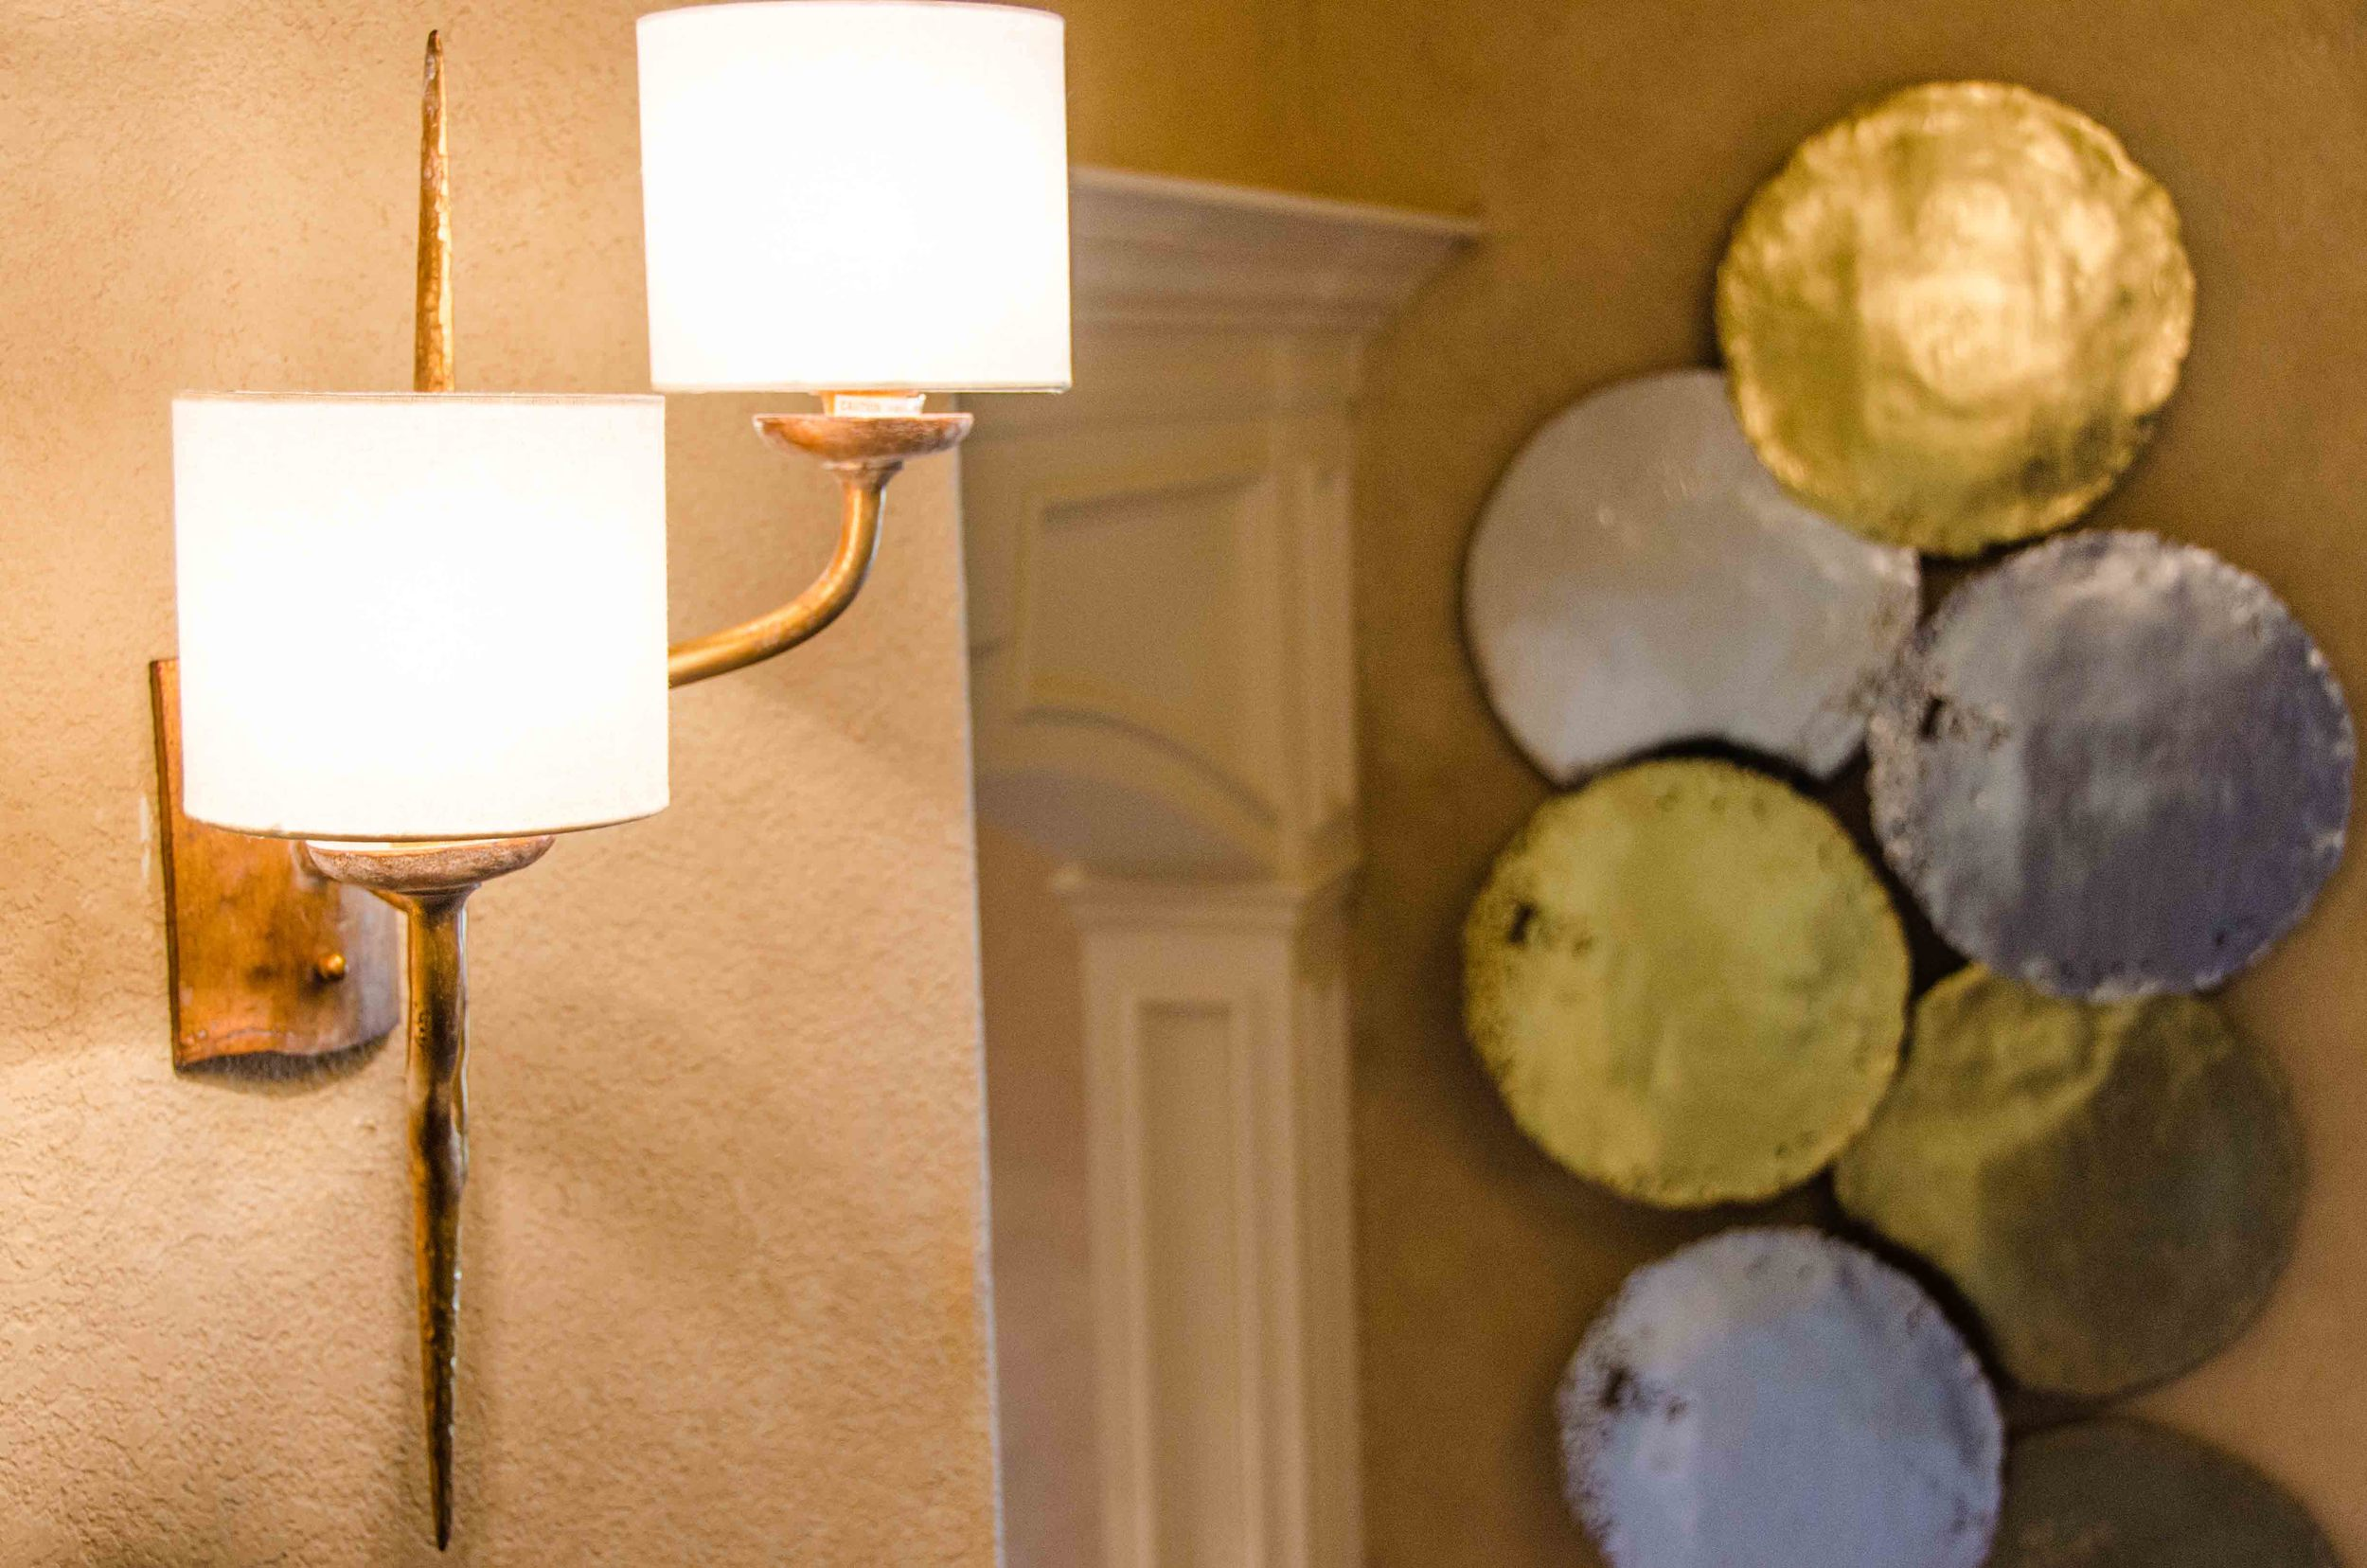 Brass wall sconce and mixed metals